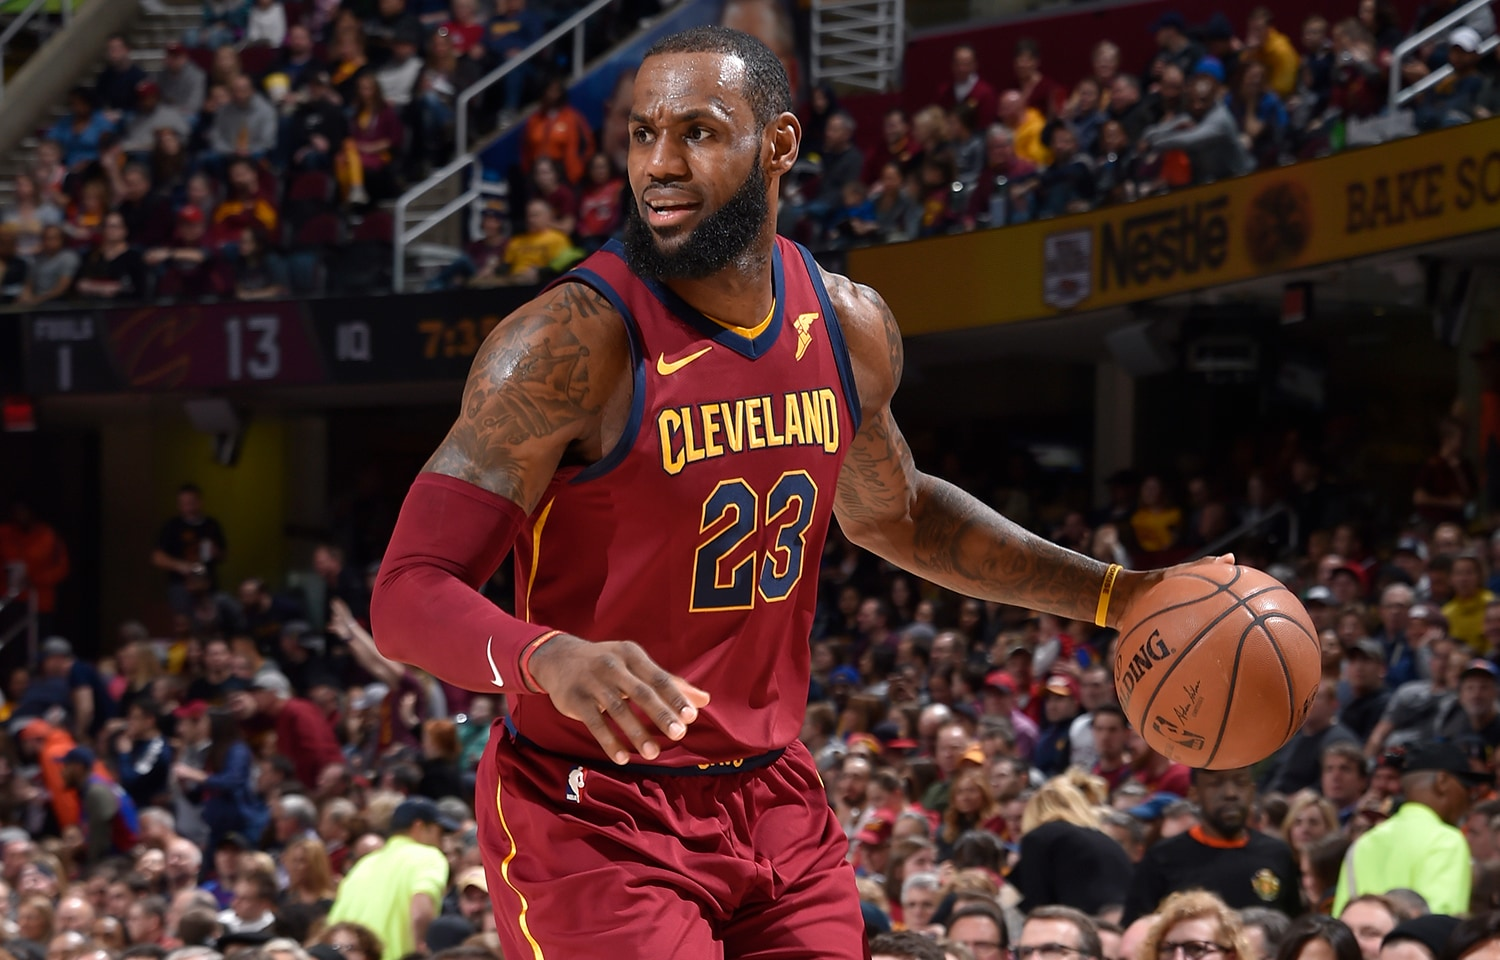 LeBron James registered his 27th double-double of the season (386th of career) with a game-high 25 points on 8-15 (.533) shooting, a game-high 14 assists, eight rebounds and one steal in 38 minutes. With his eight field goals on the night, James passed Dirk Nowitzki (10,914 FGM) for the 8th-most field goals made in NBA history.(David Liam Kyle/NBAE via Getty Images)